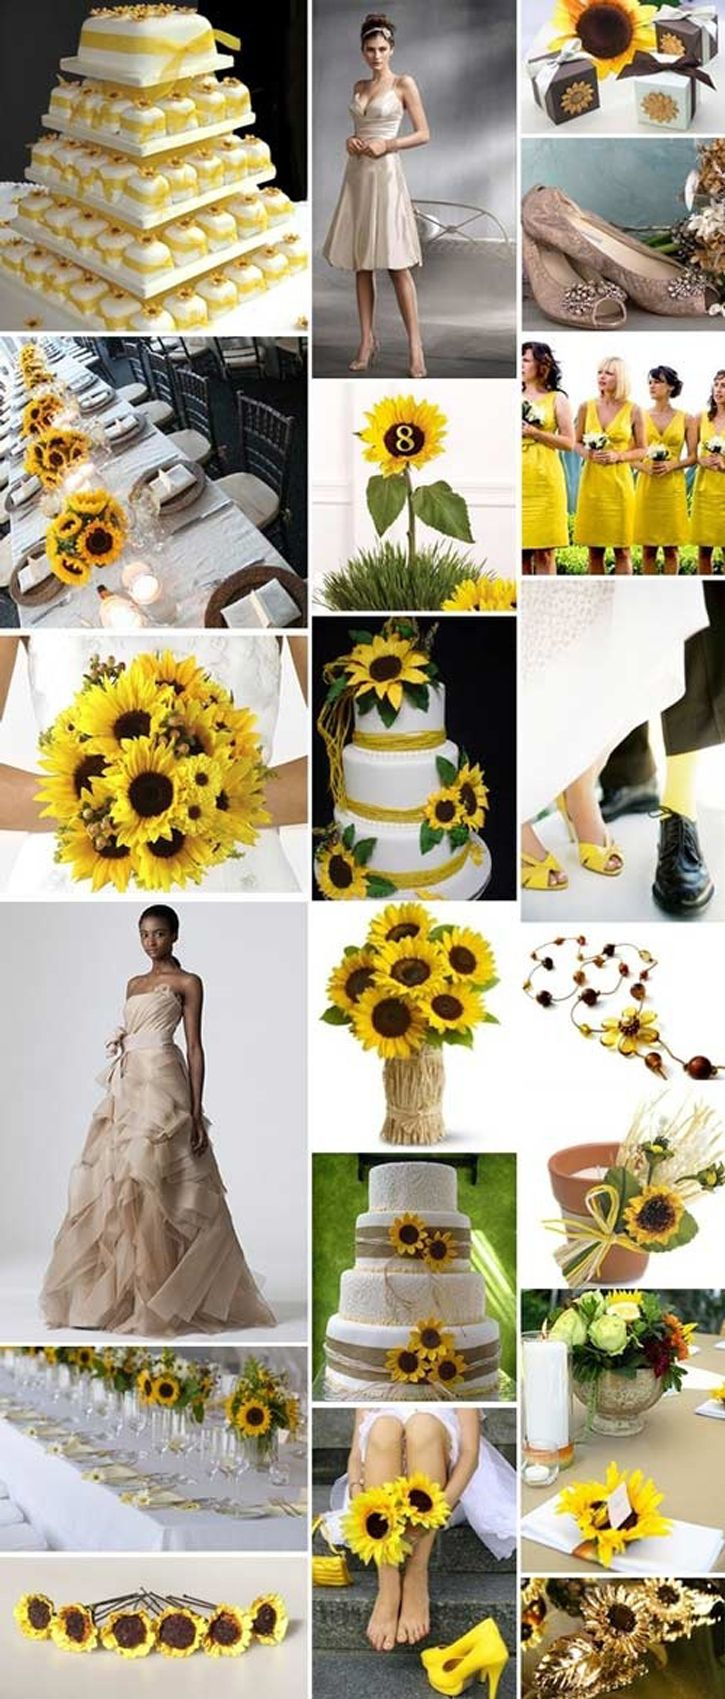 Sunflower wedding ideas gettin 39 hitched for Sunflower dresses for wedding